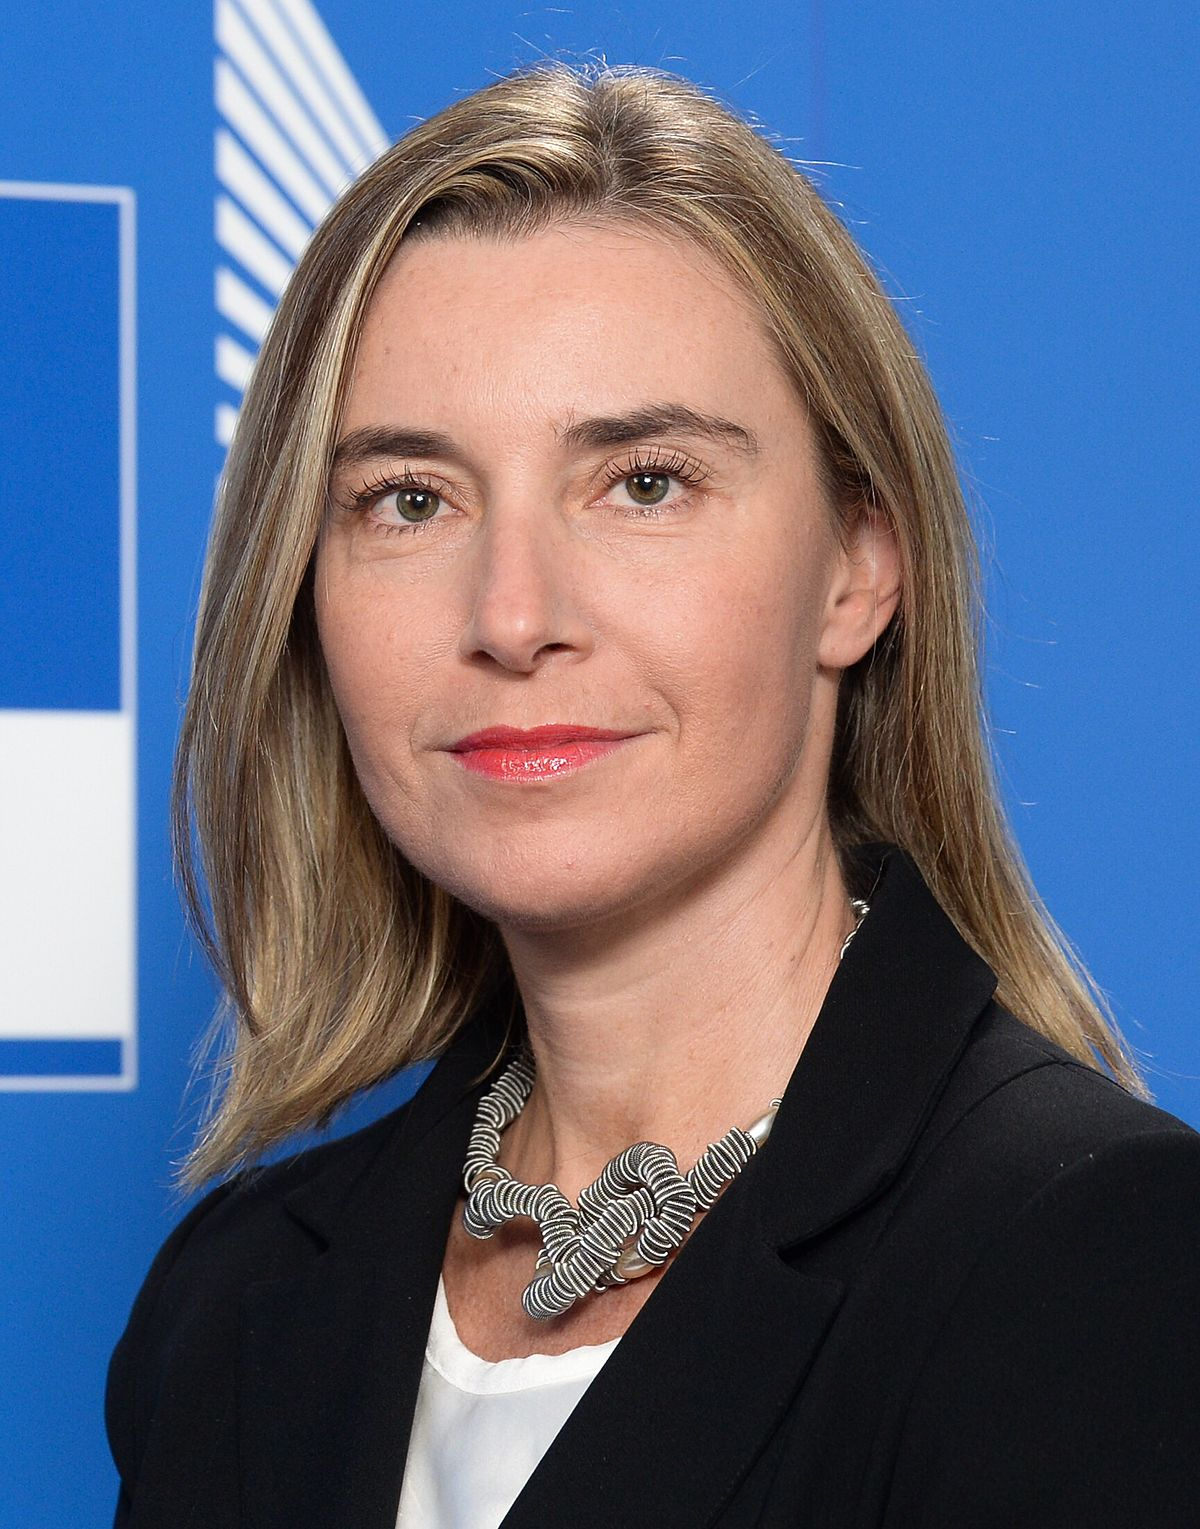 • Federica Mogherini, High Representative of the Union for Foreign Affairs and Security Policy